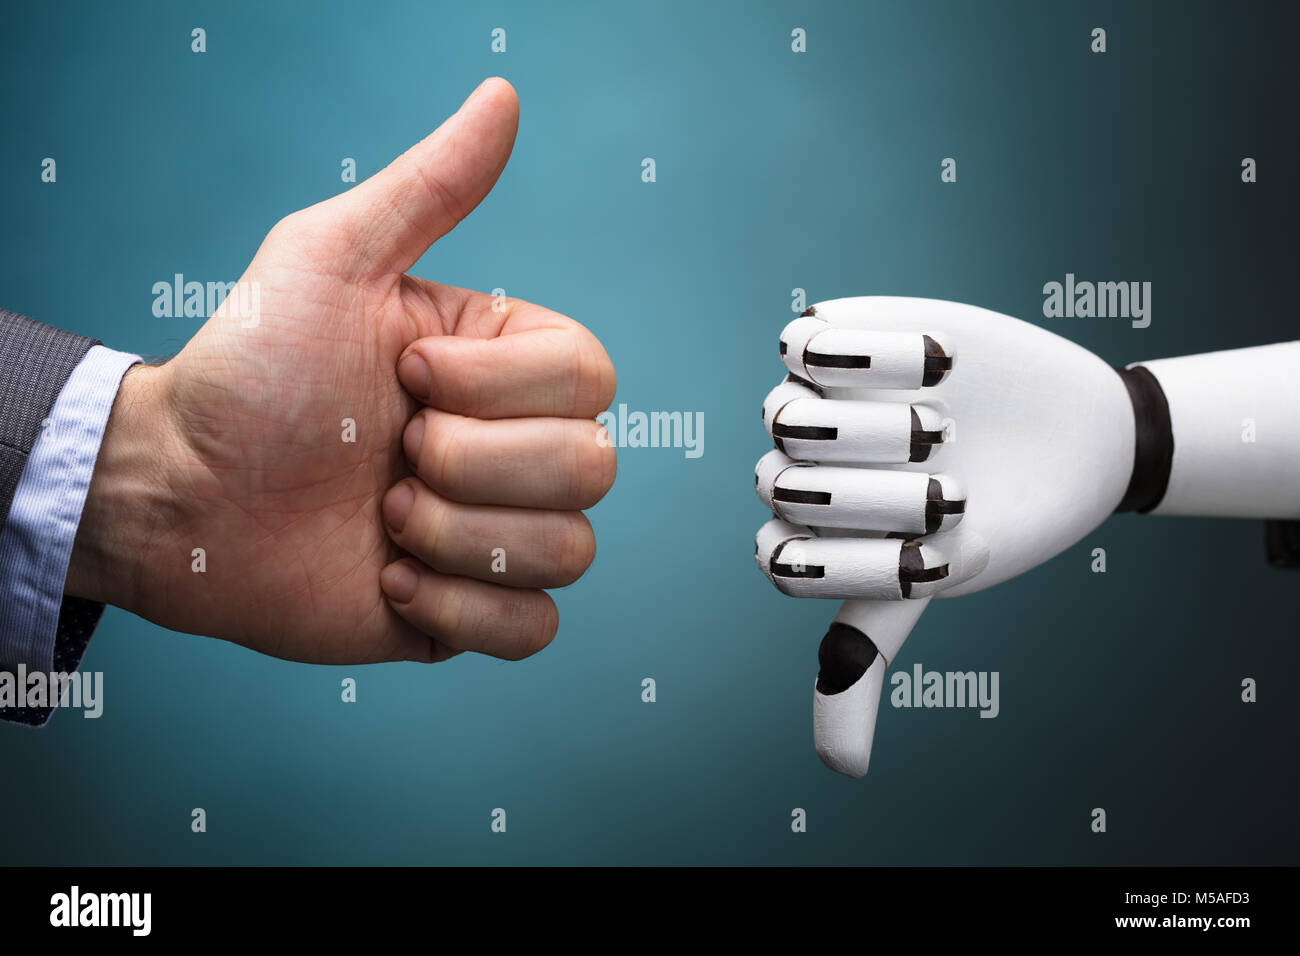 Businessperson And Robot Showing Thumb Up And Thumb Down Sign On Turquoise Background - Stock Image